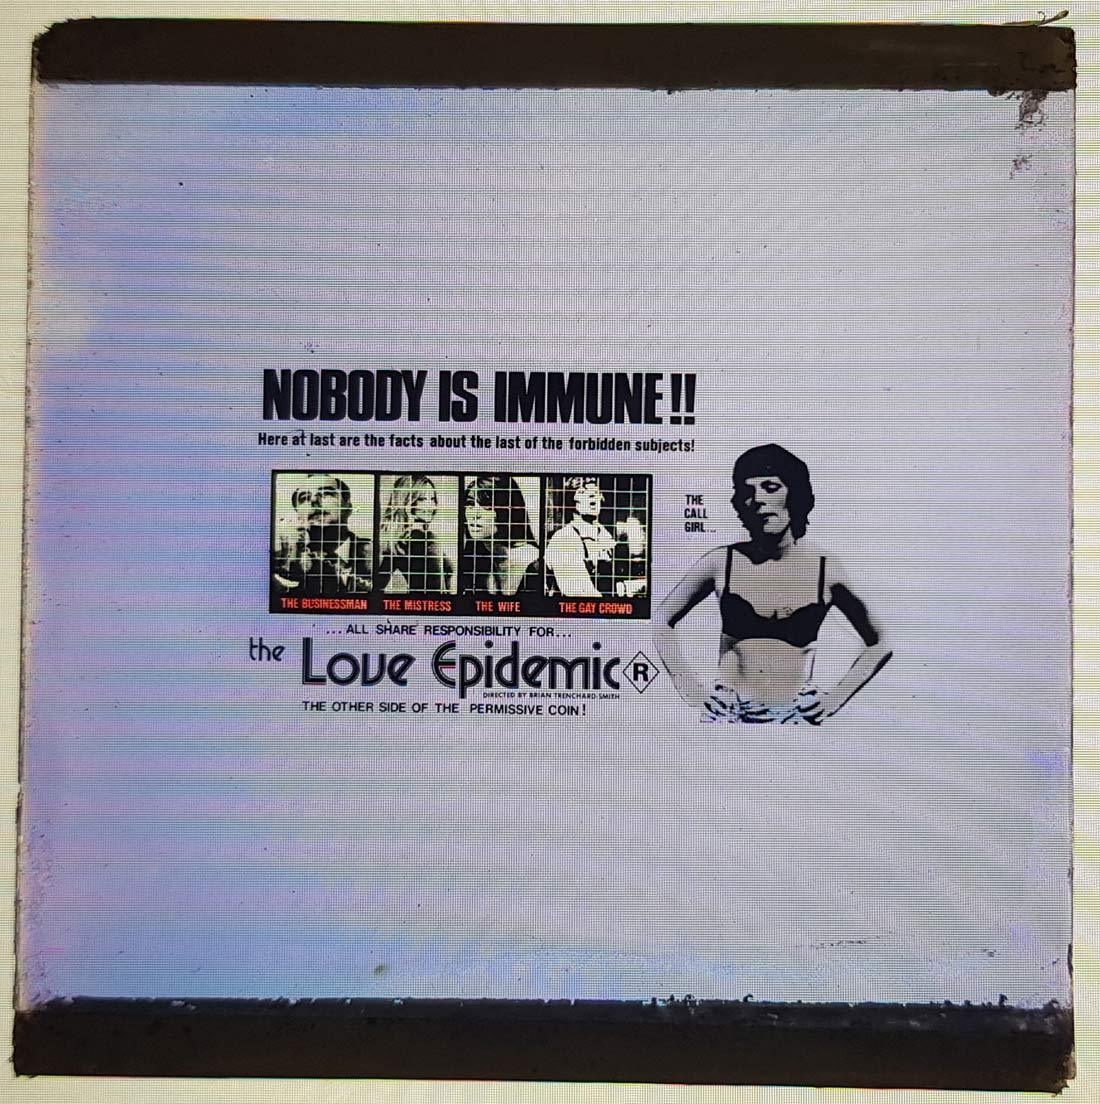 THE LOVE EPIDEMIC Movie Glass Slide Brian Trenchard-Smith